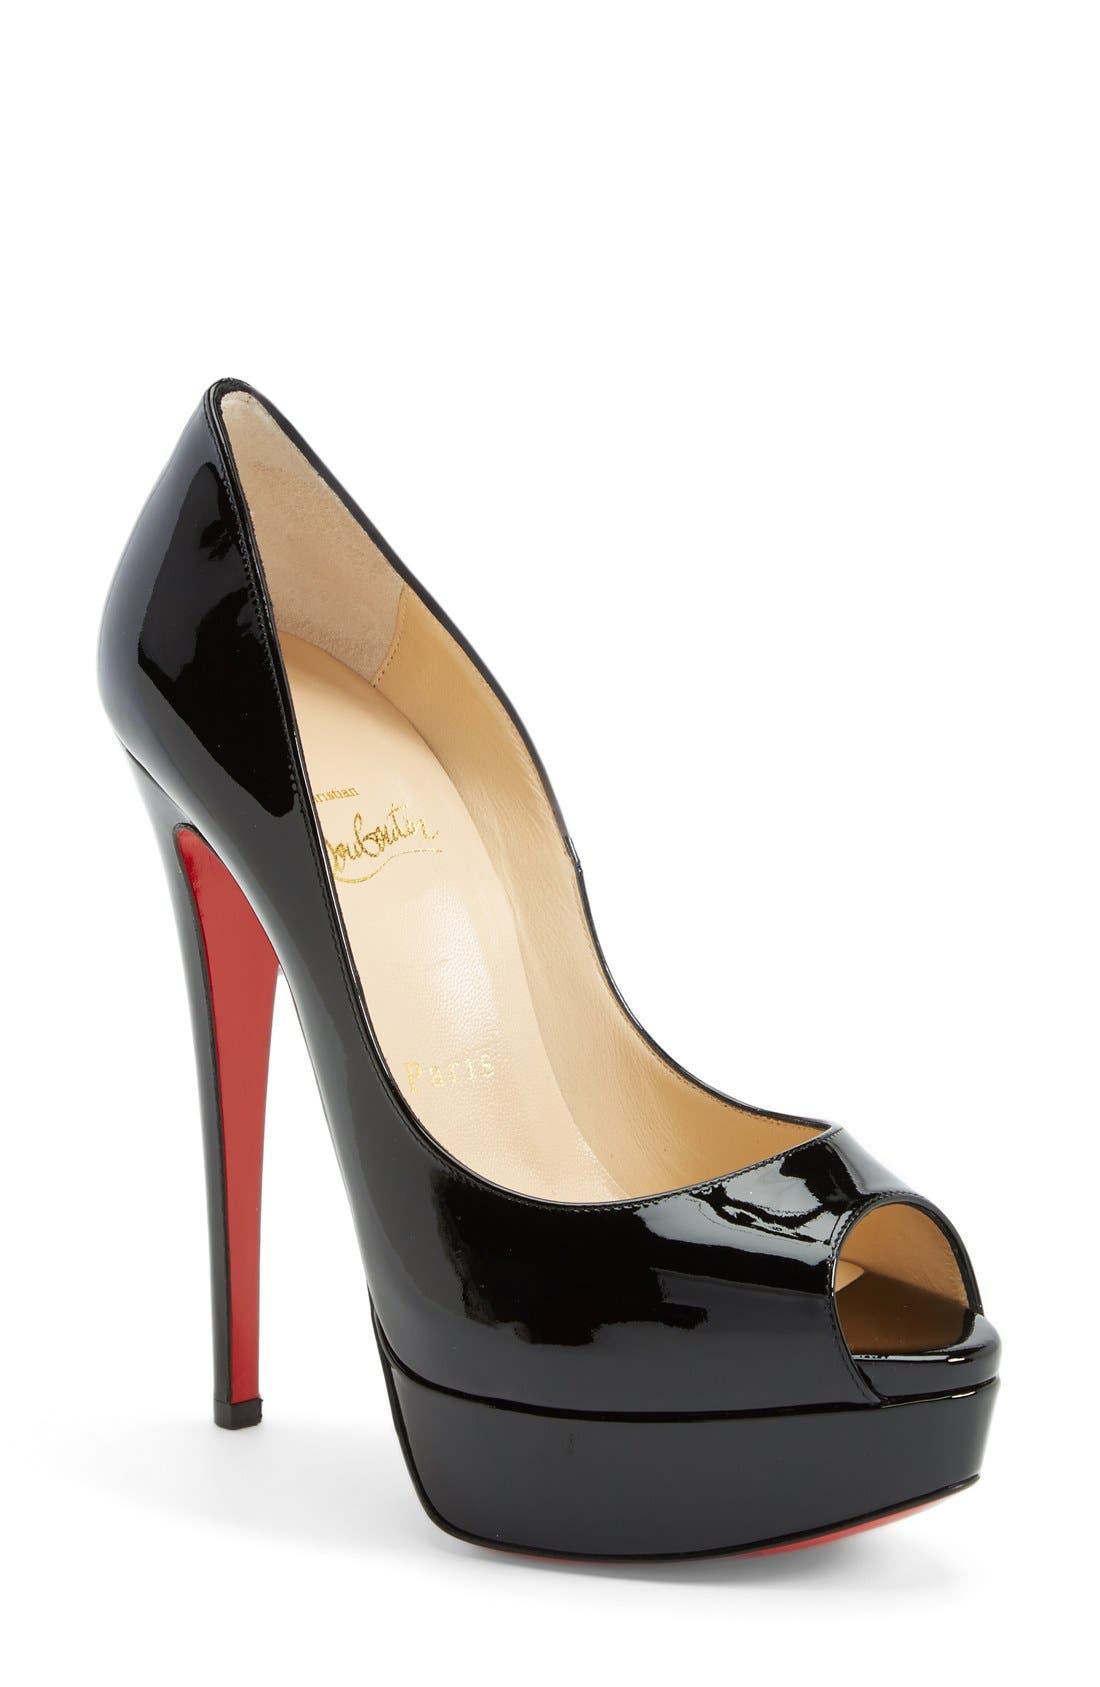 CHRISTIAN LOUBOUTIN,                             'Lady Peep' Open Toe Pump,                             Main thumbnail 1, color,                             002